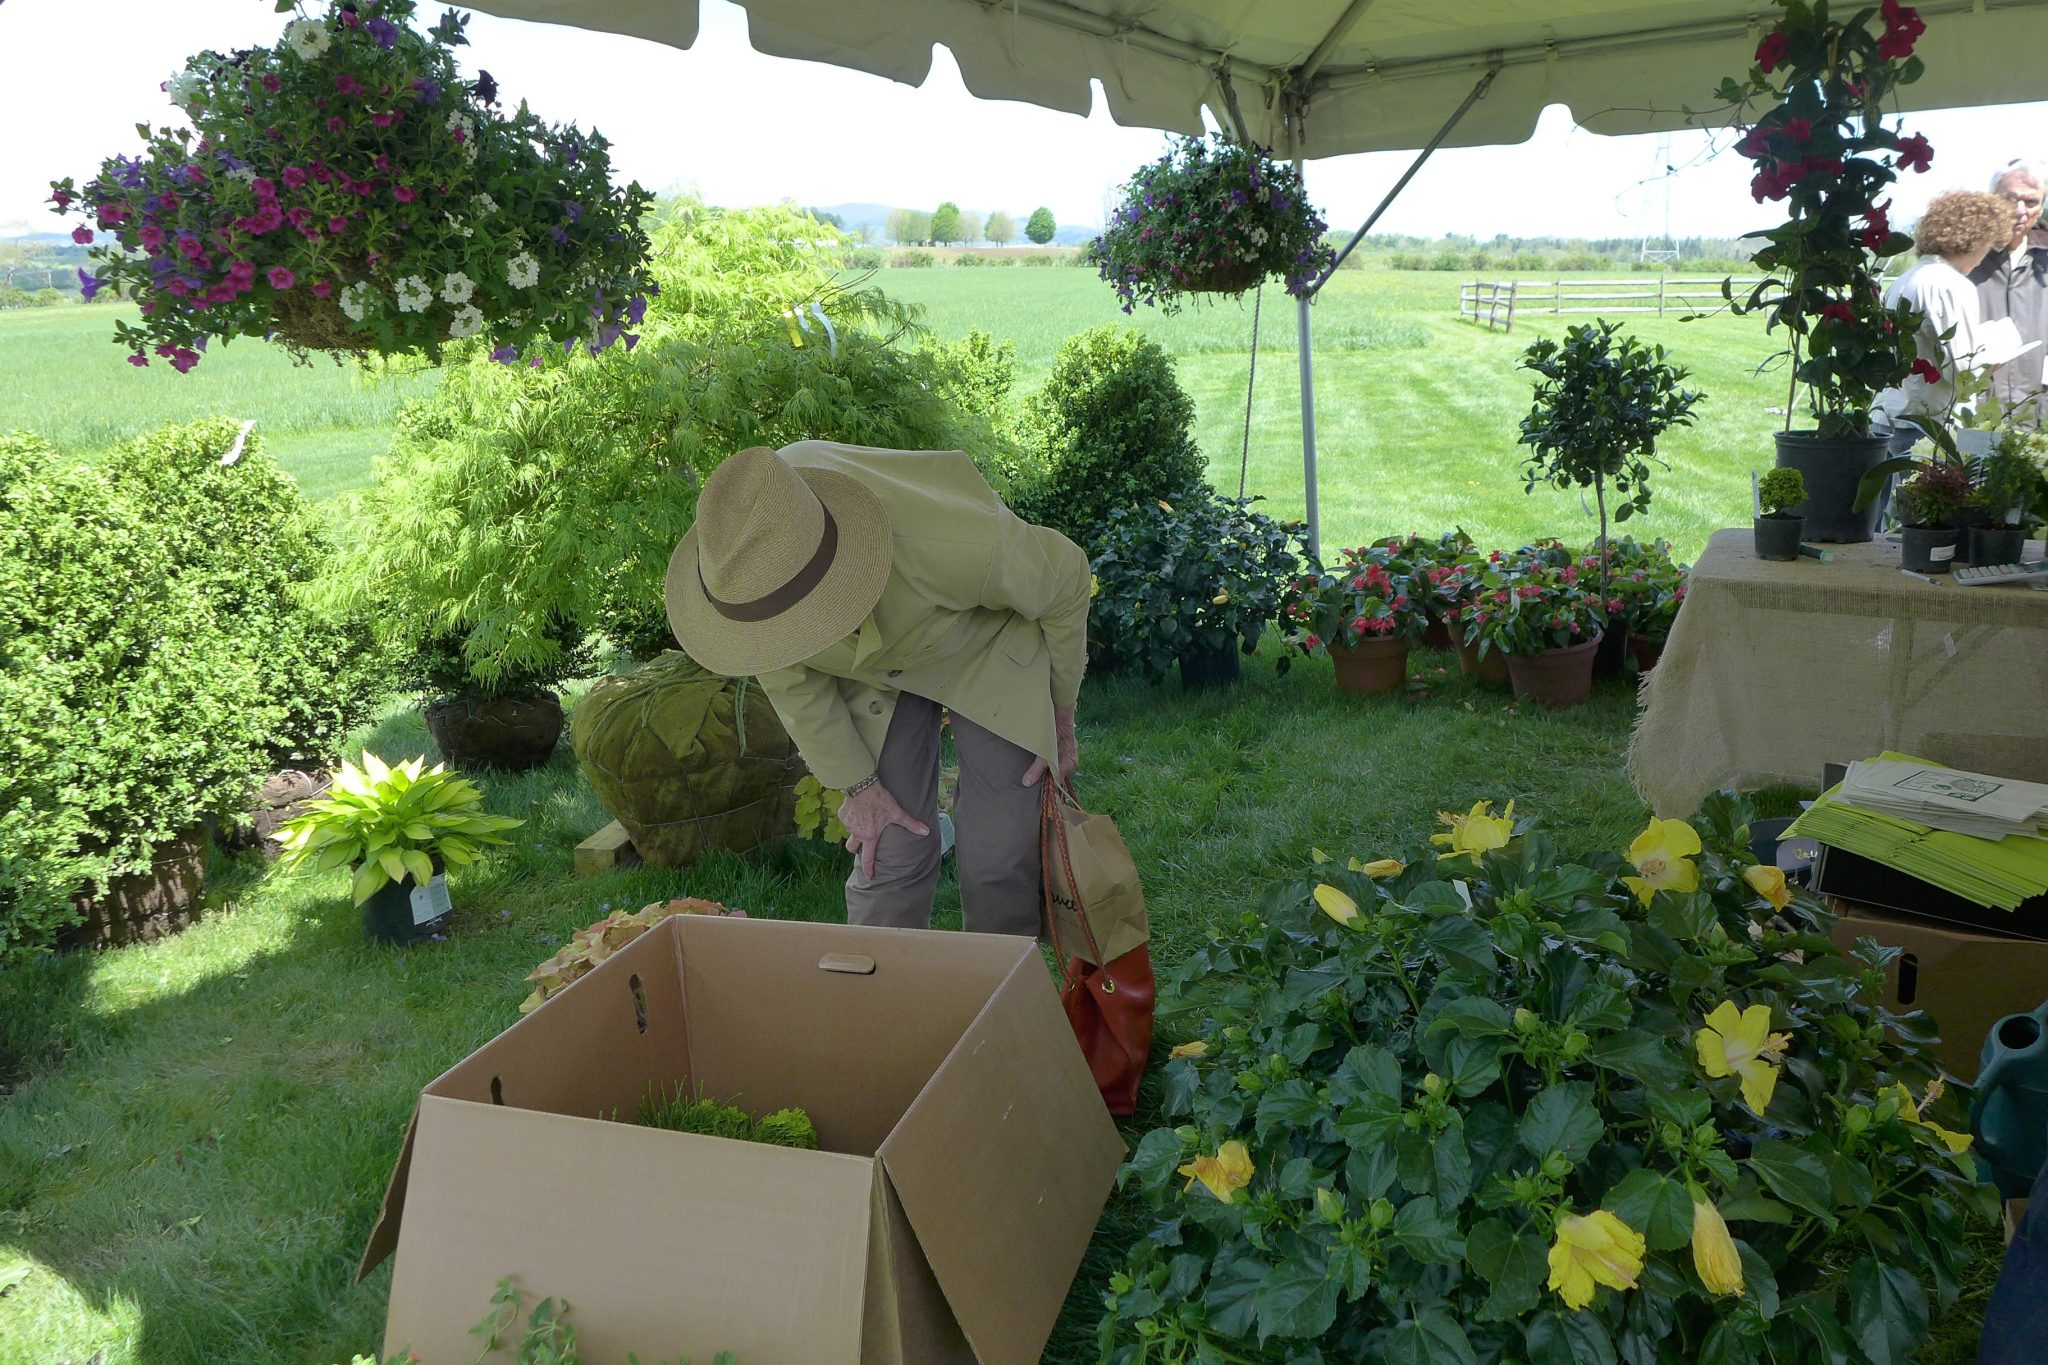 The event featured a well-organized system for processing your purchases. Orders were boxed or bagged and tagged with your individual buyer's number and moved to a marked location behind the barn. At the end of the day you just had to drive up and hard-working volunteers loaded your car.